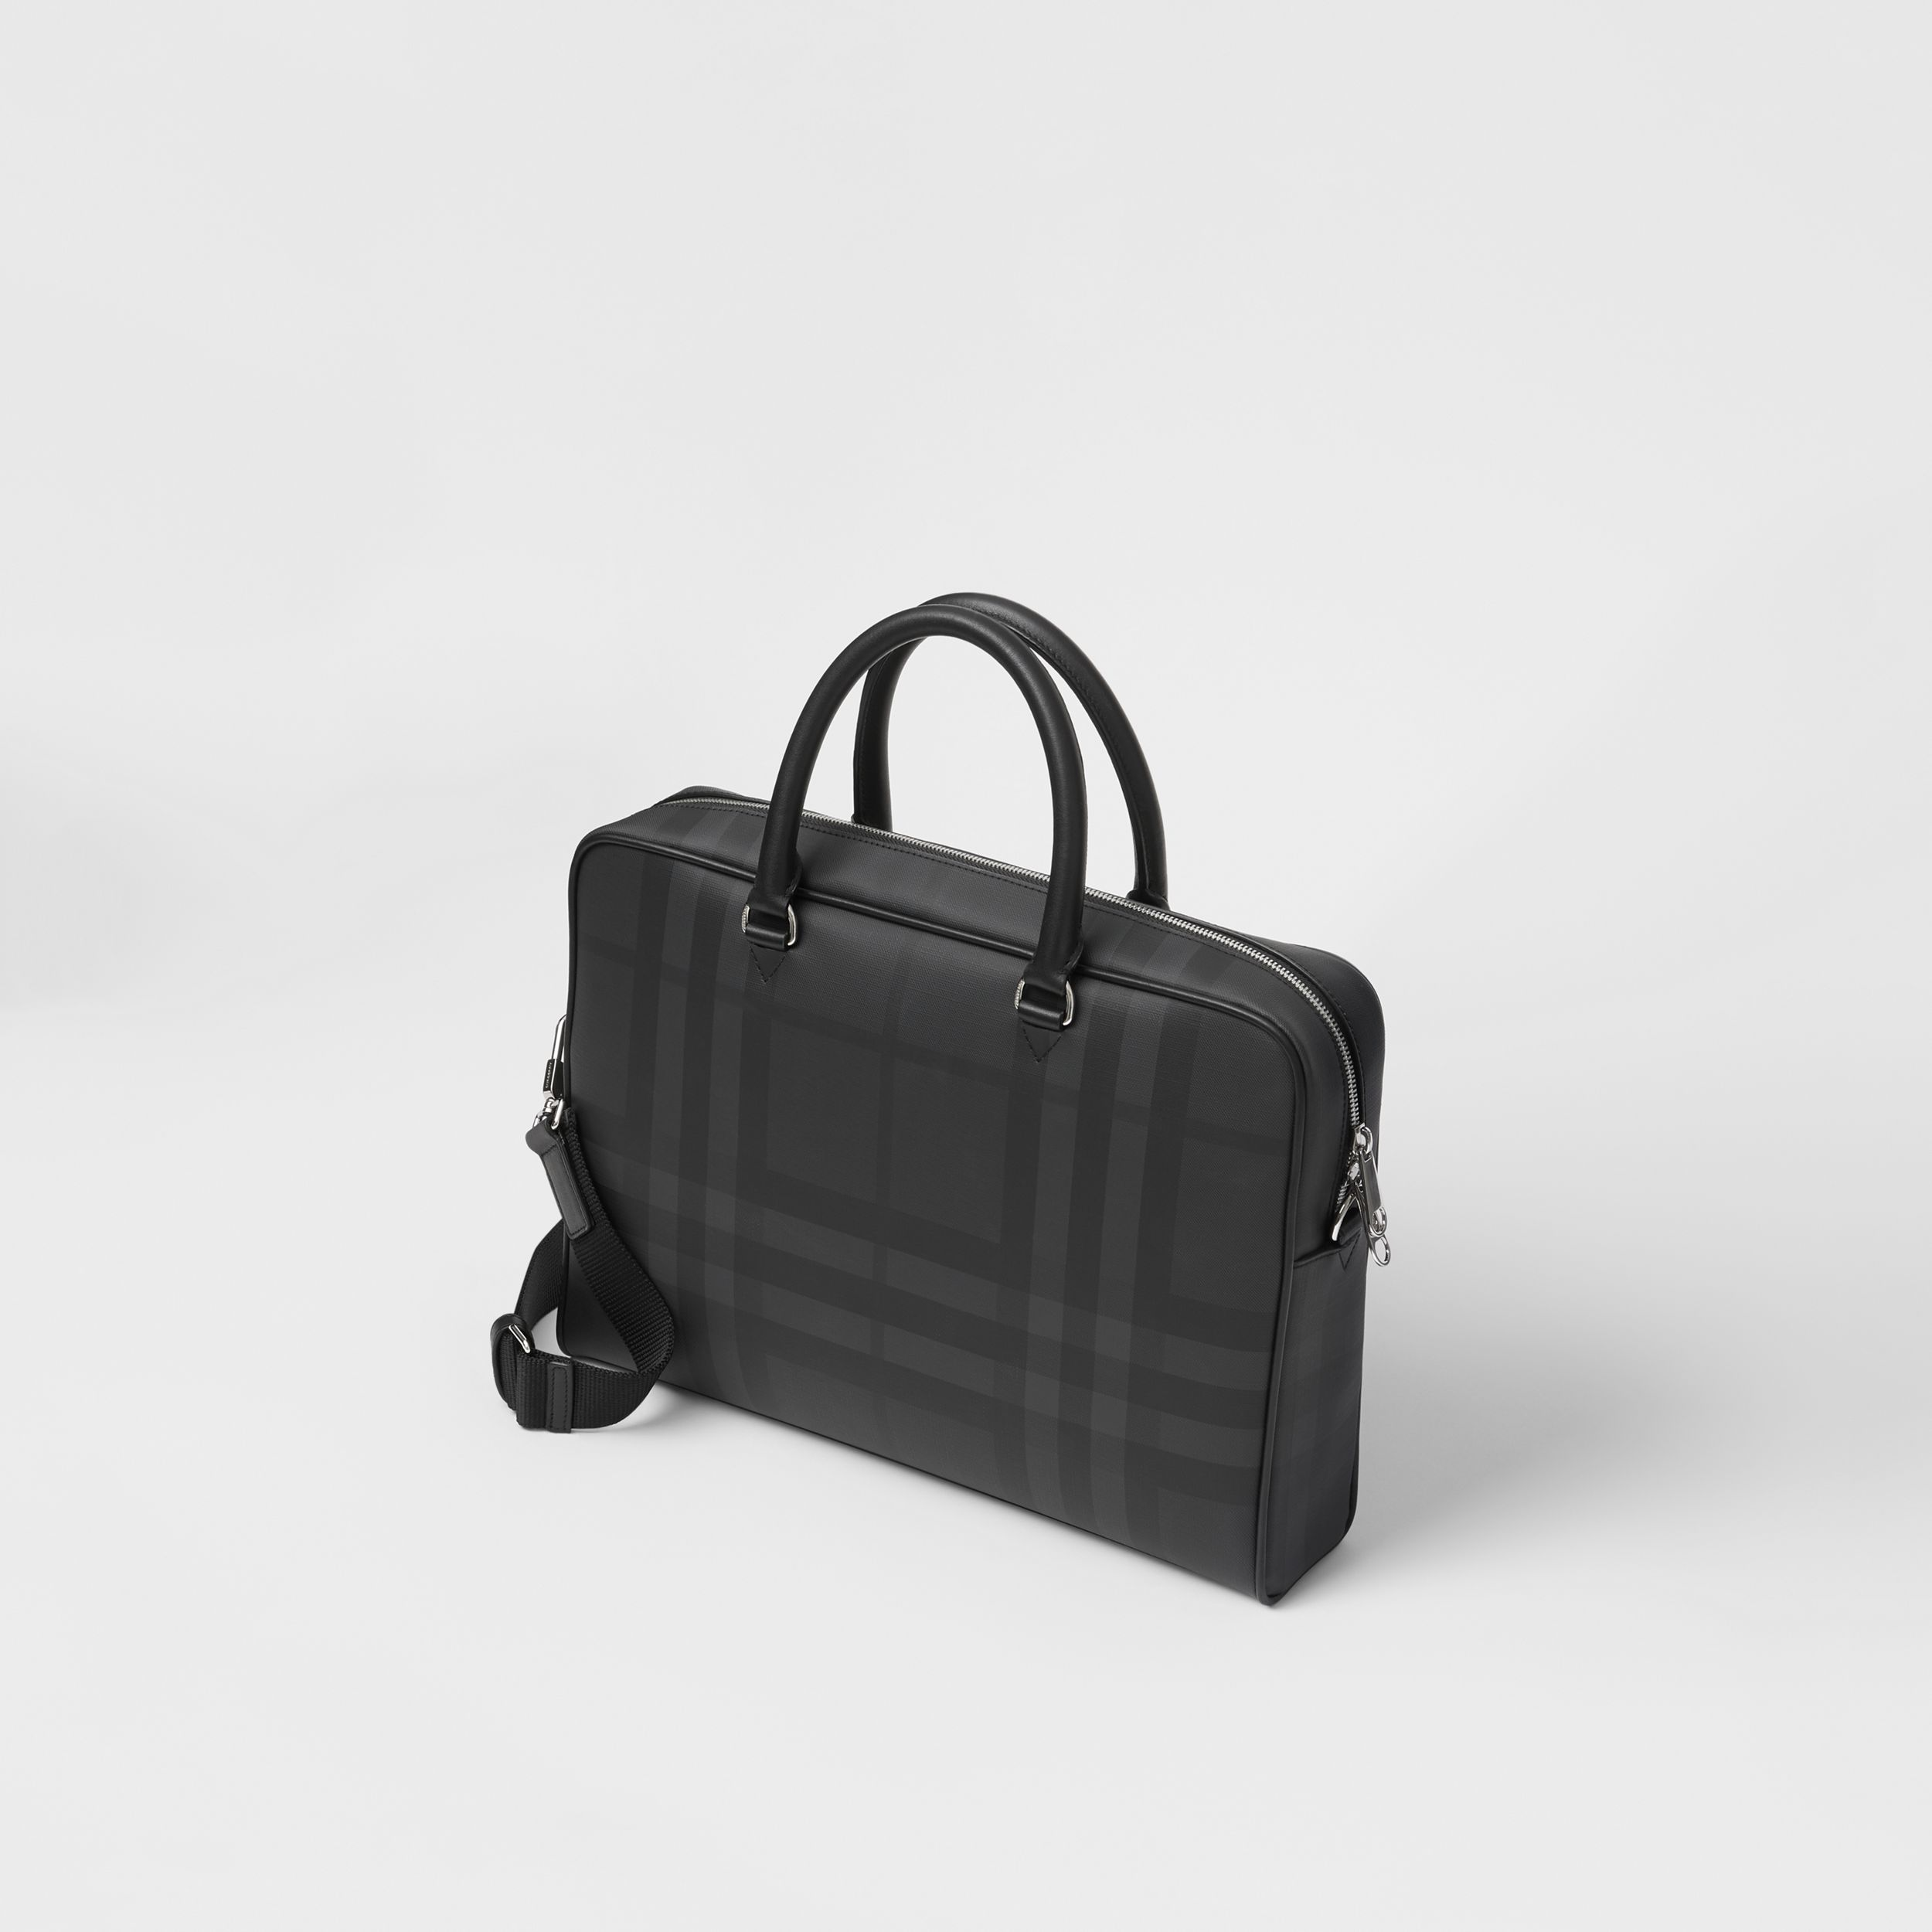 London Check and Leather Briefcase in Dark Charcoal - Men | Burberry - 4